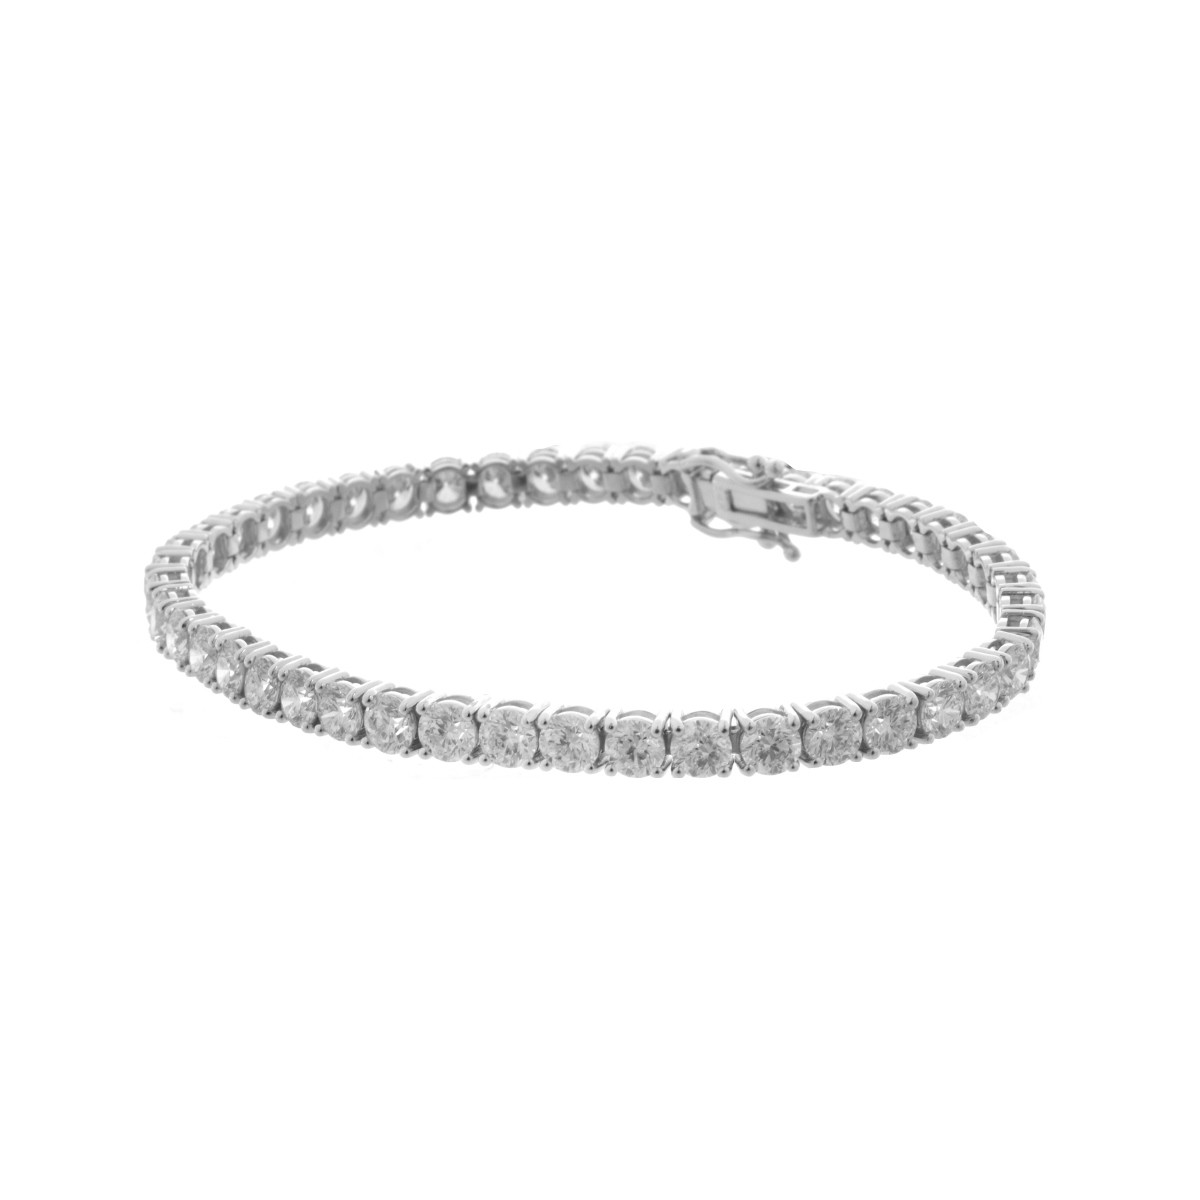 10.75 Carat Diamond Tennis Bracelet